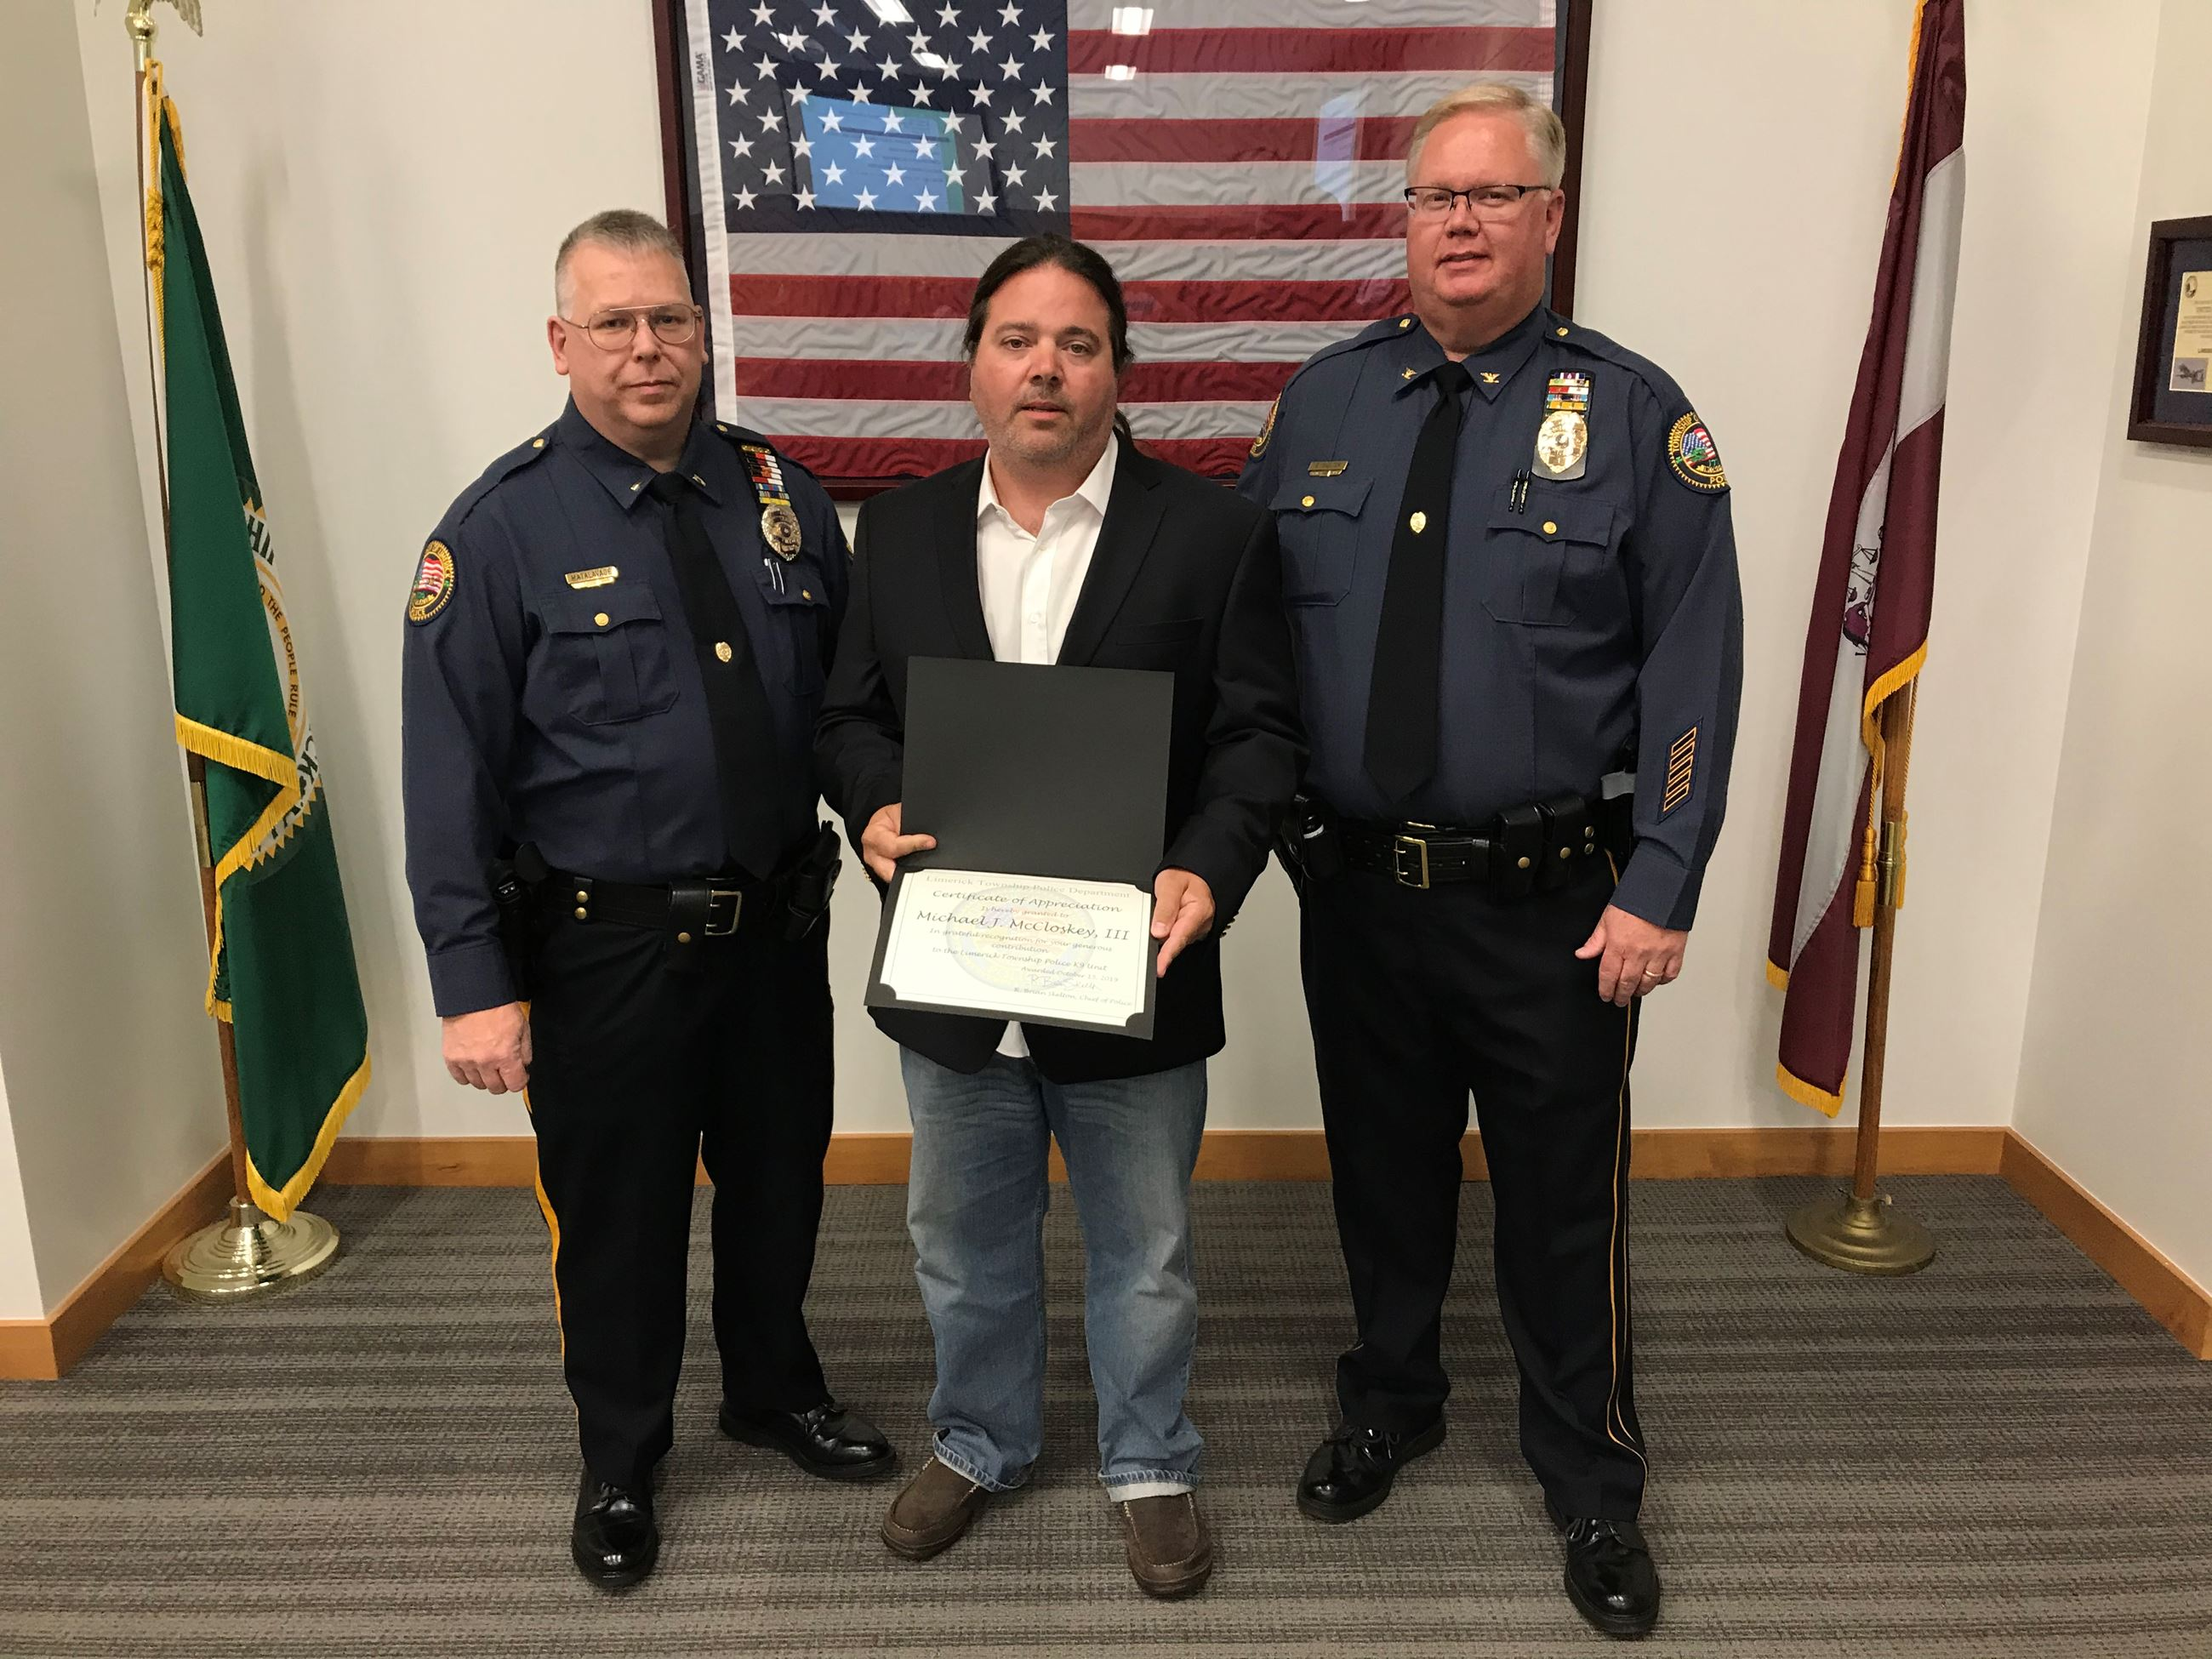 Mike McCloskey Recognized for Donation to Police K-9 Unit - pictured Police Lieutenant Robert Matala